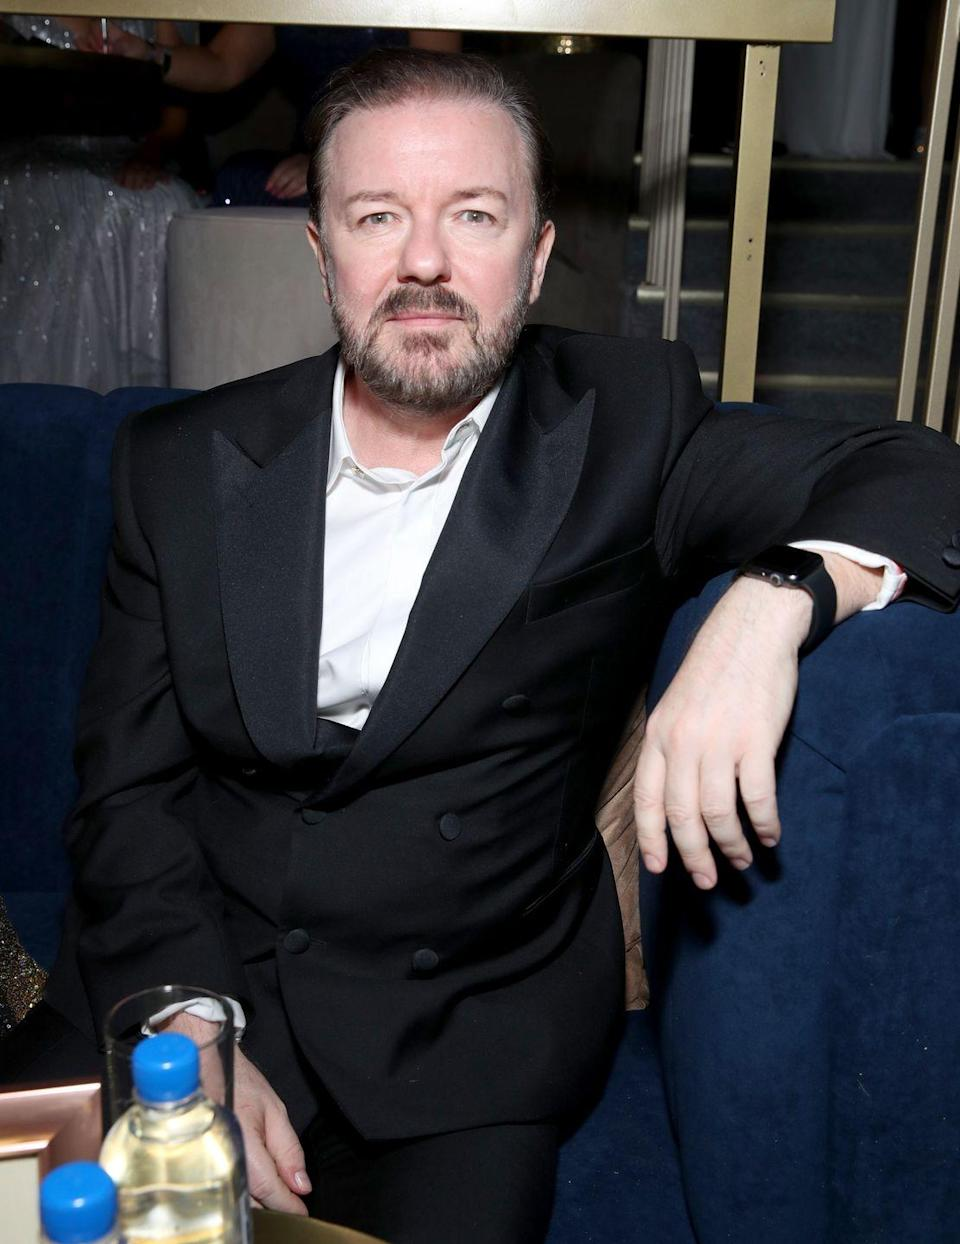 """<p>It was announced that Ricky Gervais would join Kermit and Miss Piggy in 2011's <em>The Muppets</em>, but the actor's scenes were <a href=""""https://www.imdb.com/title/tt1204342/trivia"""" rel=""""nofollow noopener"""" target=""""_blank"""" data-ylk=""""slk:cut from the theatrical version"""" class=""""link rapid-noclick-resp"""">cut from the theatrical version</a>. He wasn't alone: Billy Crystal, Rob Corddry, and Danny Trejo were also edited out of the movie. </p>"""